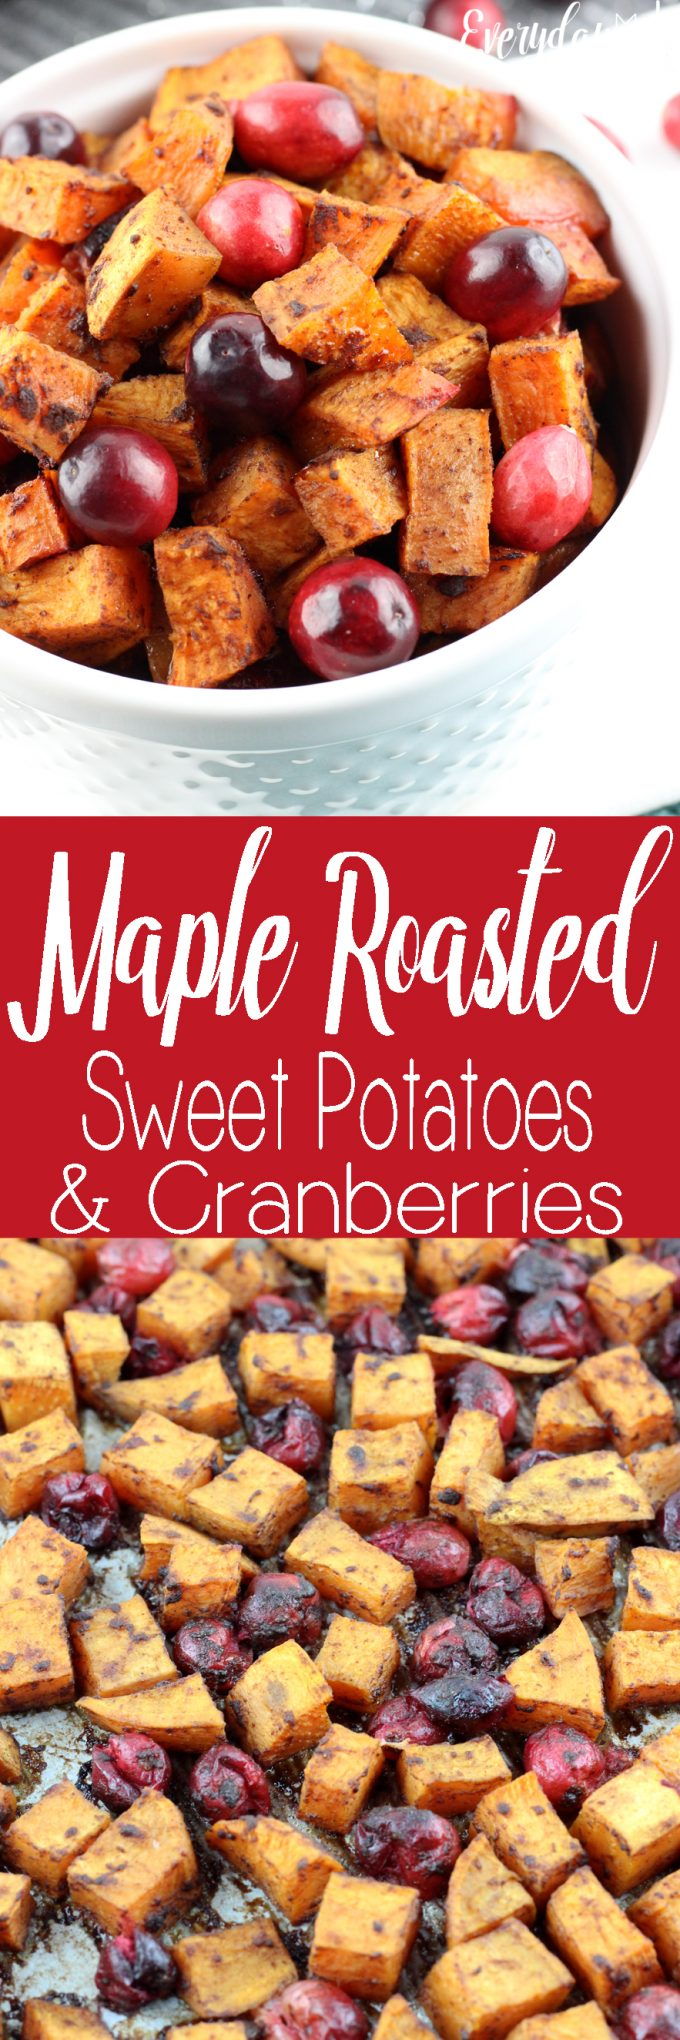 What could make sweet potatoes even better? Maple, cinnamon, and cranberries! This Maple Roasted Sweet Potatoes and Cranberries is the perfect side any day of the week.   EverydayMadeFresh.com